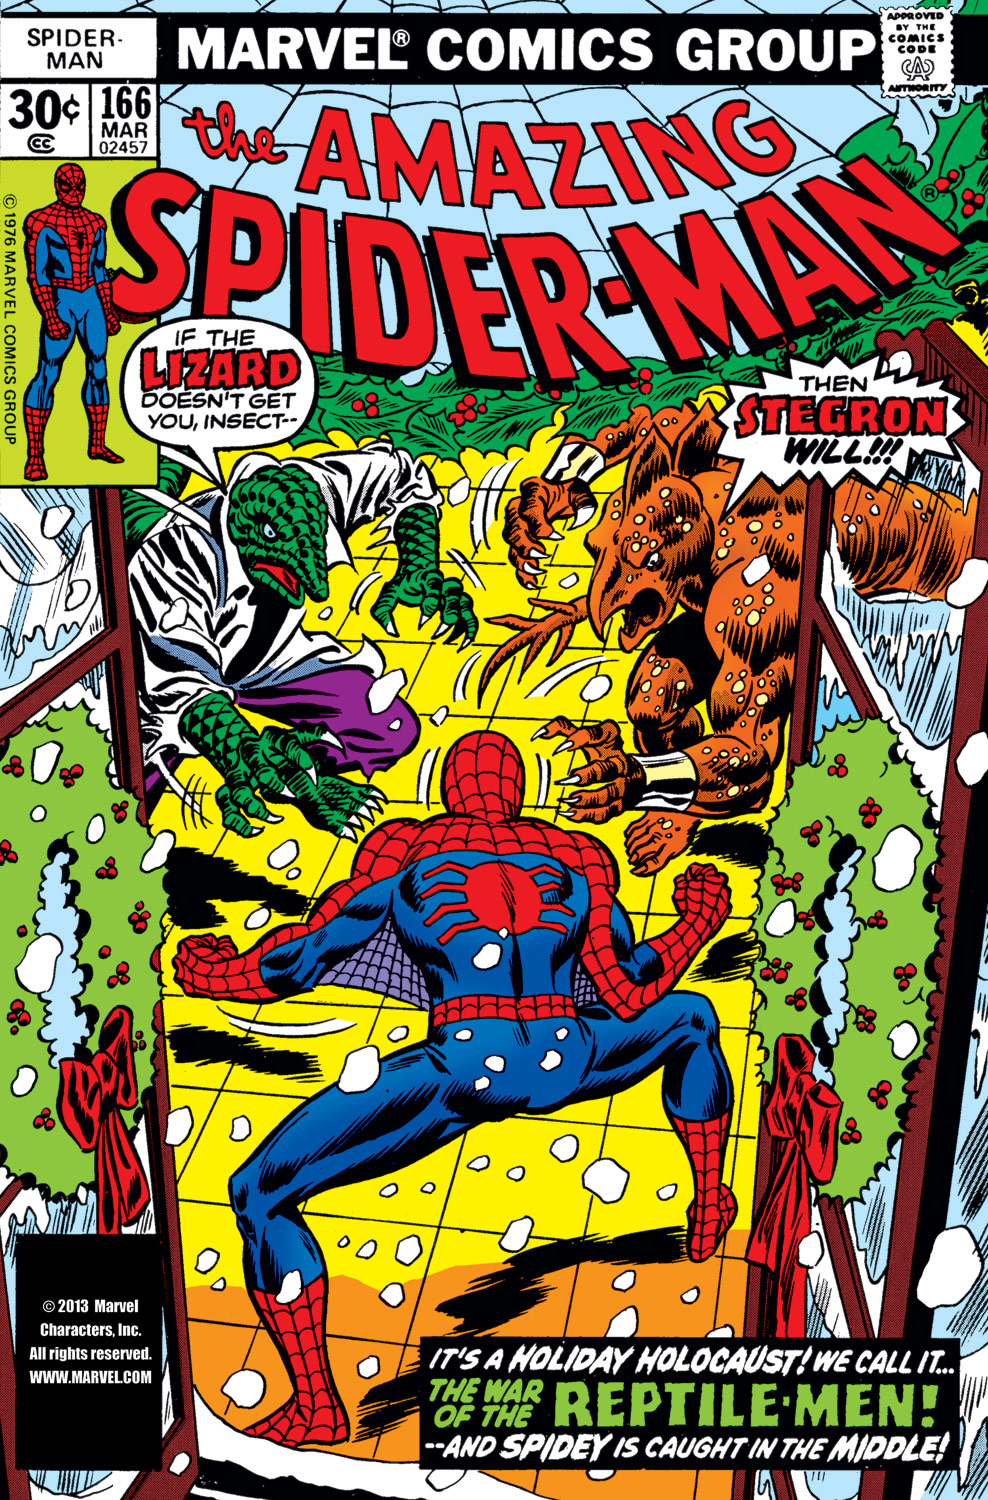 The Amazing Spider-Man (1963) #166